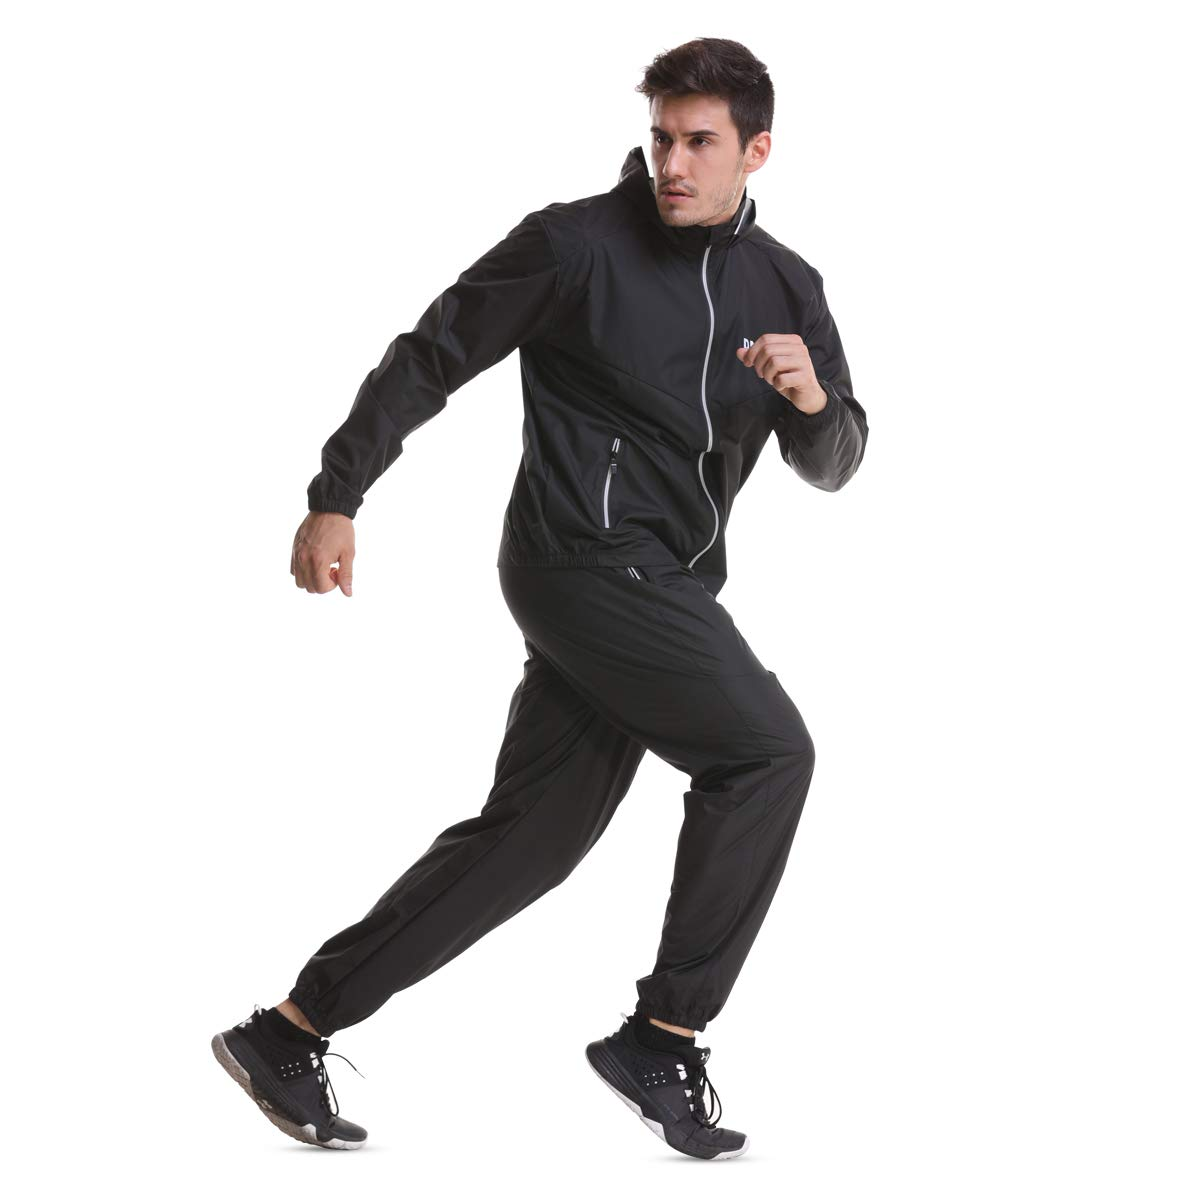 DNRZY F.I.T Sauna Sweat Suits for Men and Women Weight Loss Fat Burner Fitness Sauna Sweat Ruining Jogging Waterproof Windproof Hooded Jacket and Pants Suits Workout Suits